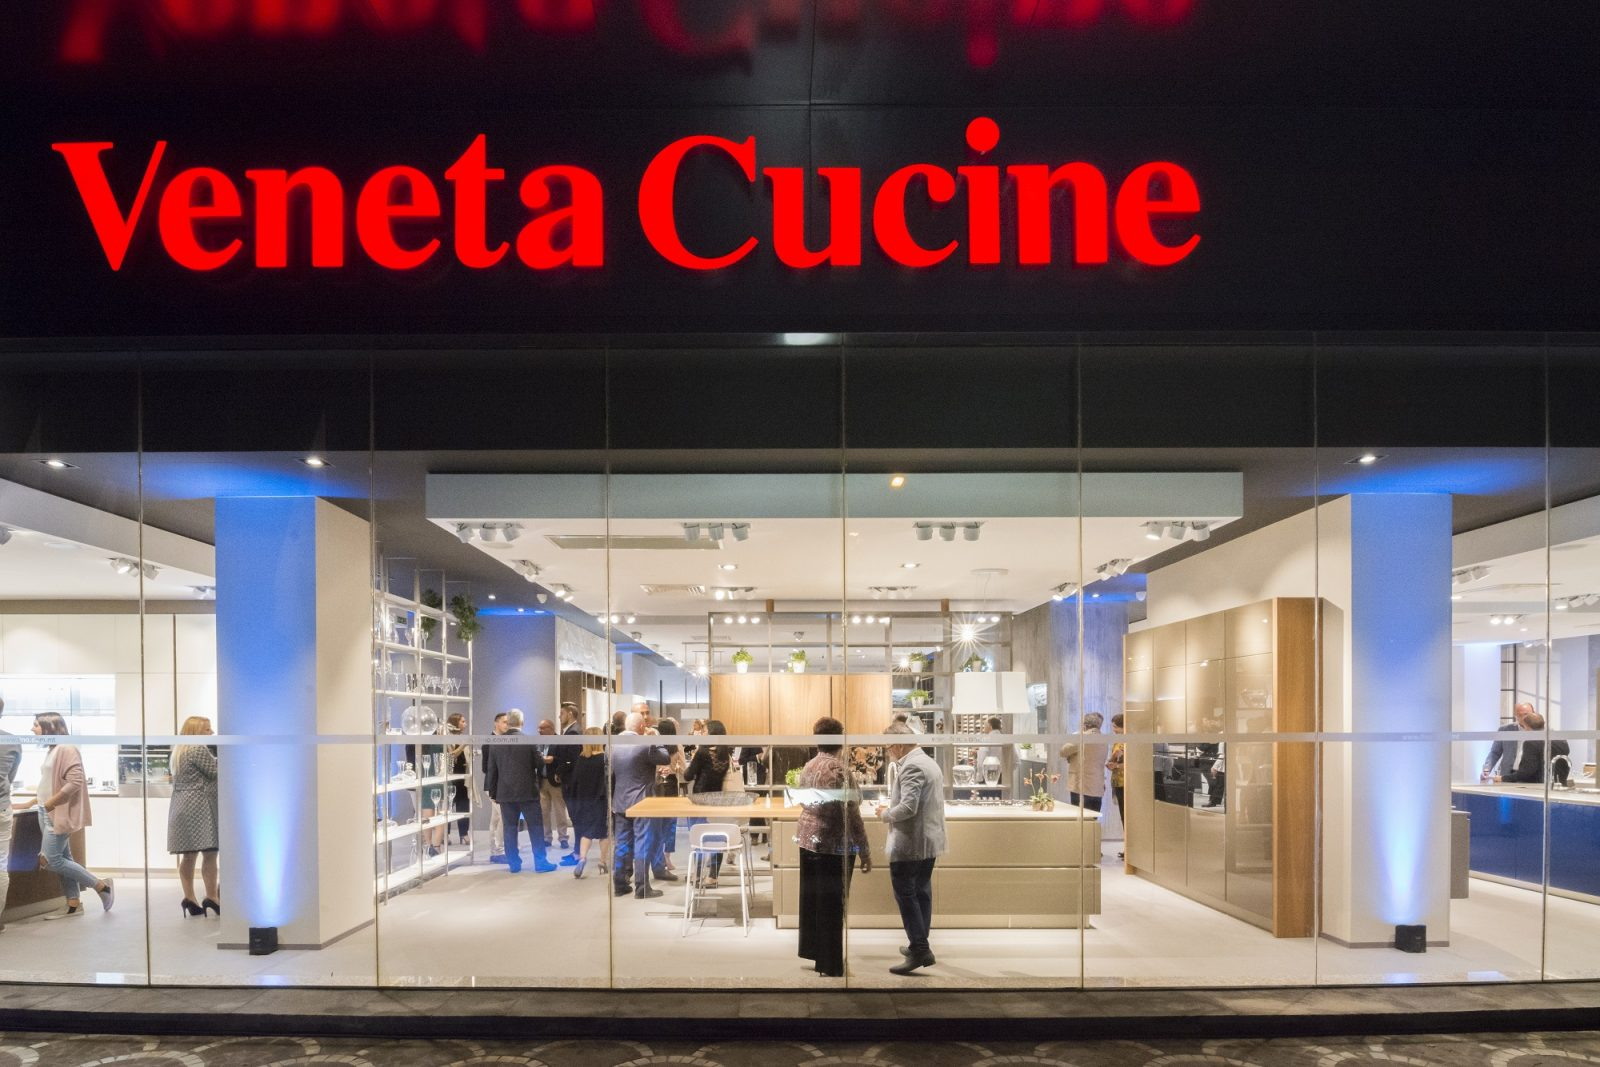 New Veneta Cucine Showroom | HOMEWORKS